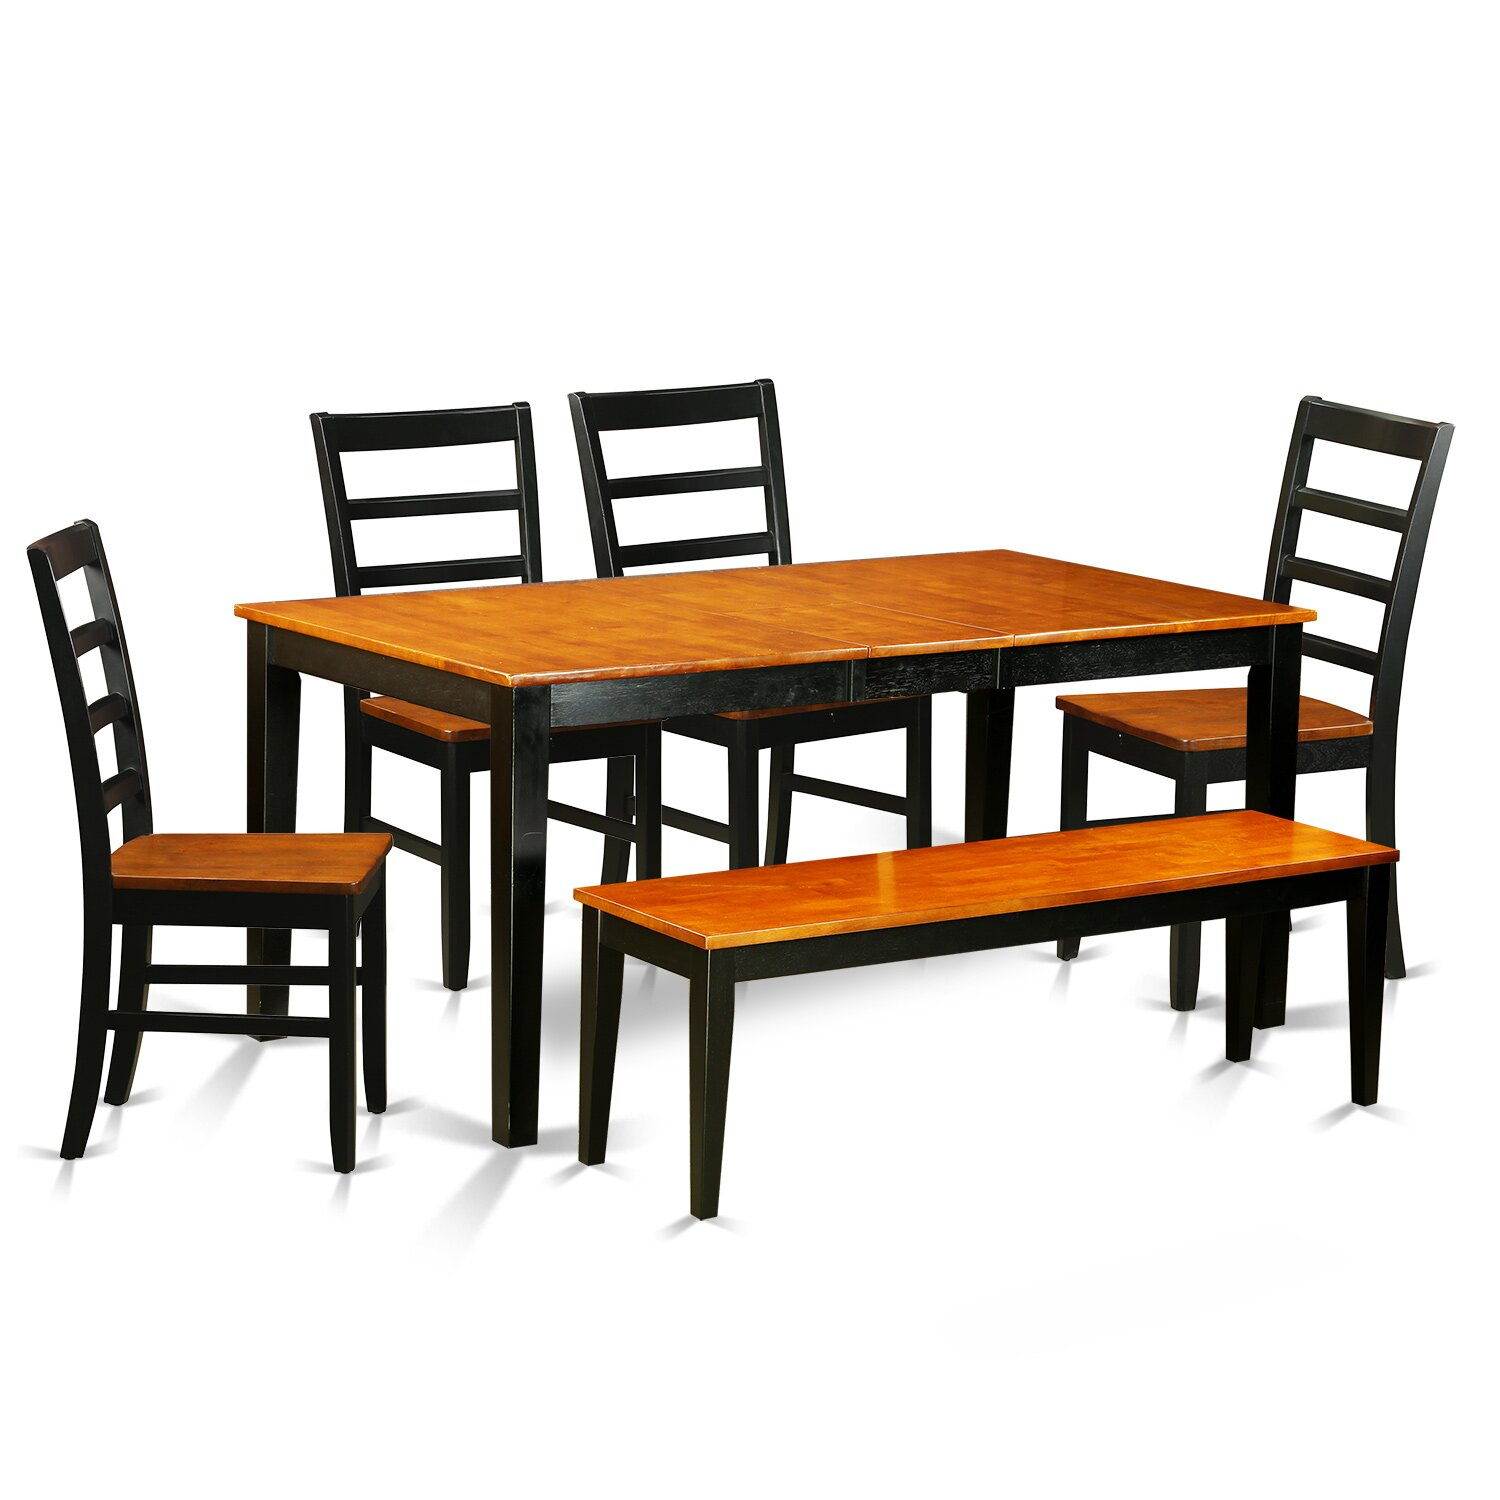 East west nicoli 6 piece dining set wayfair for Dining room sets 6 piece